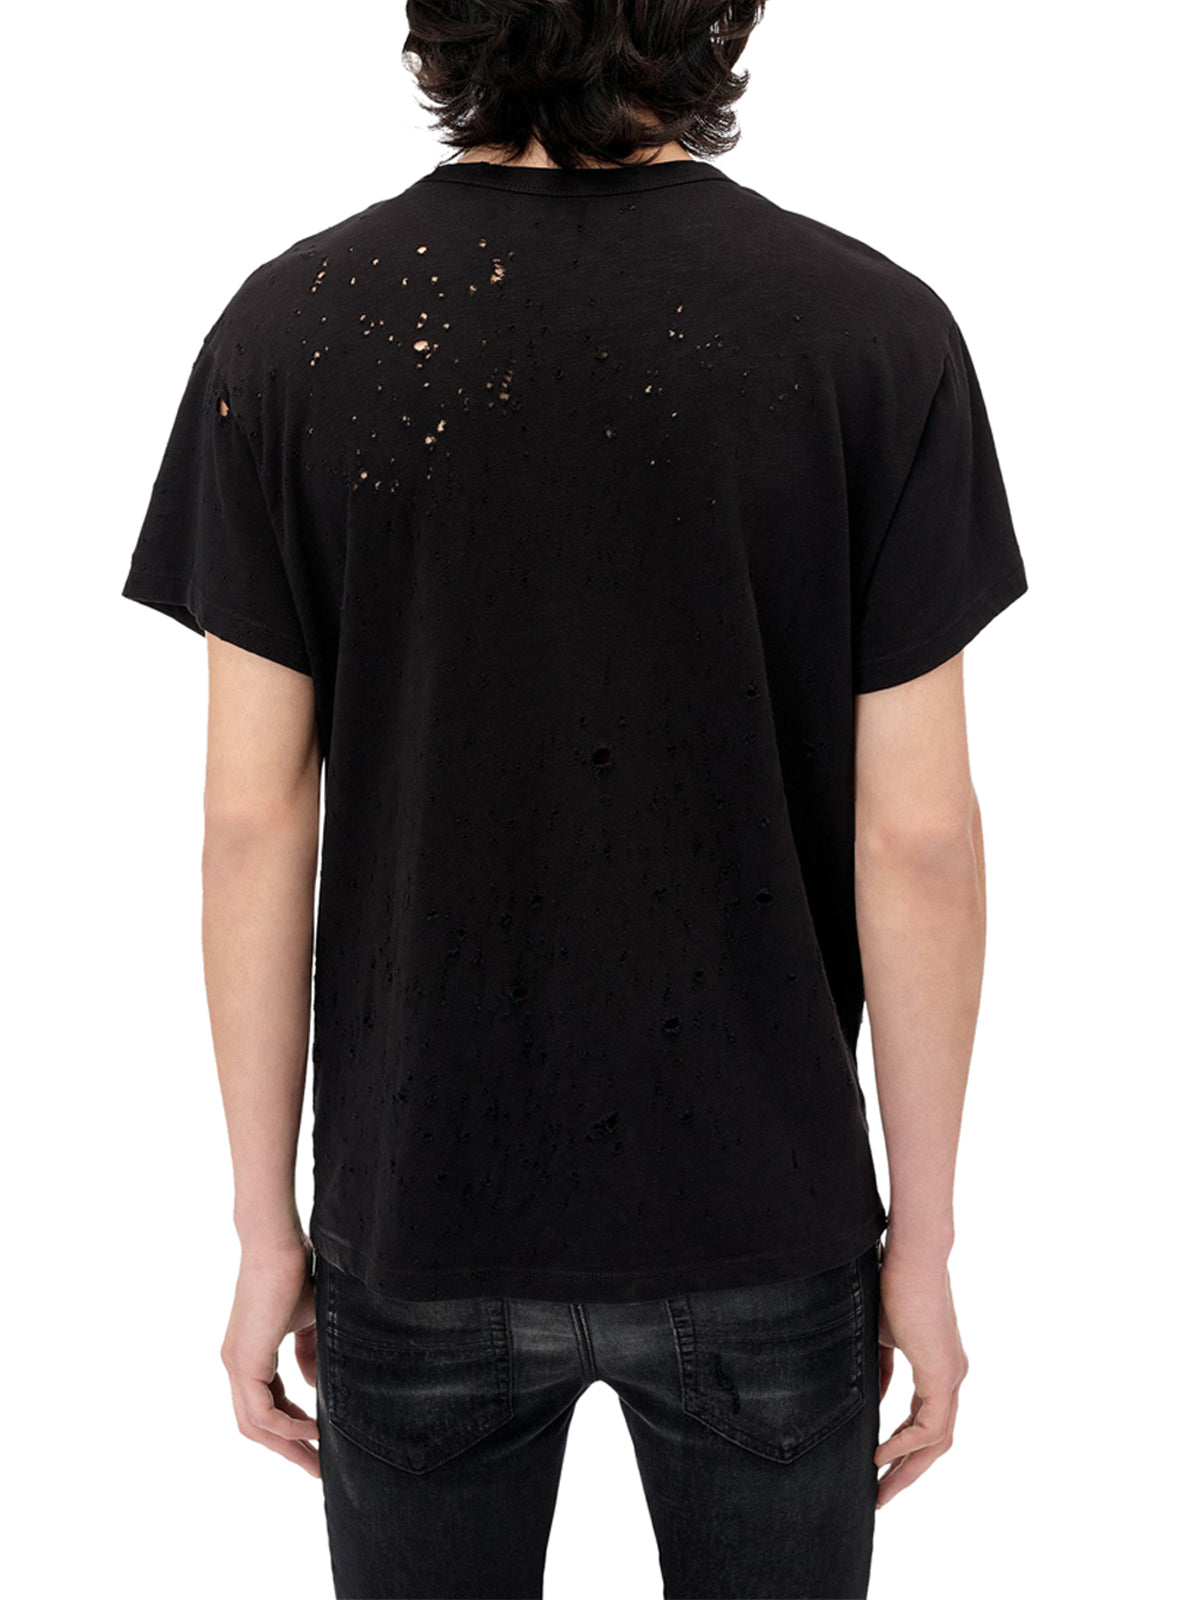 Perforated TSHIRT